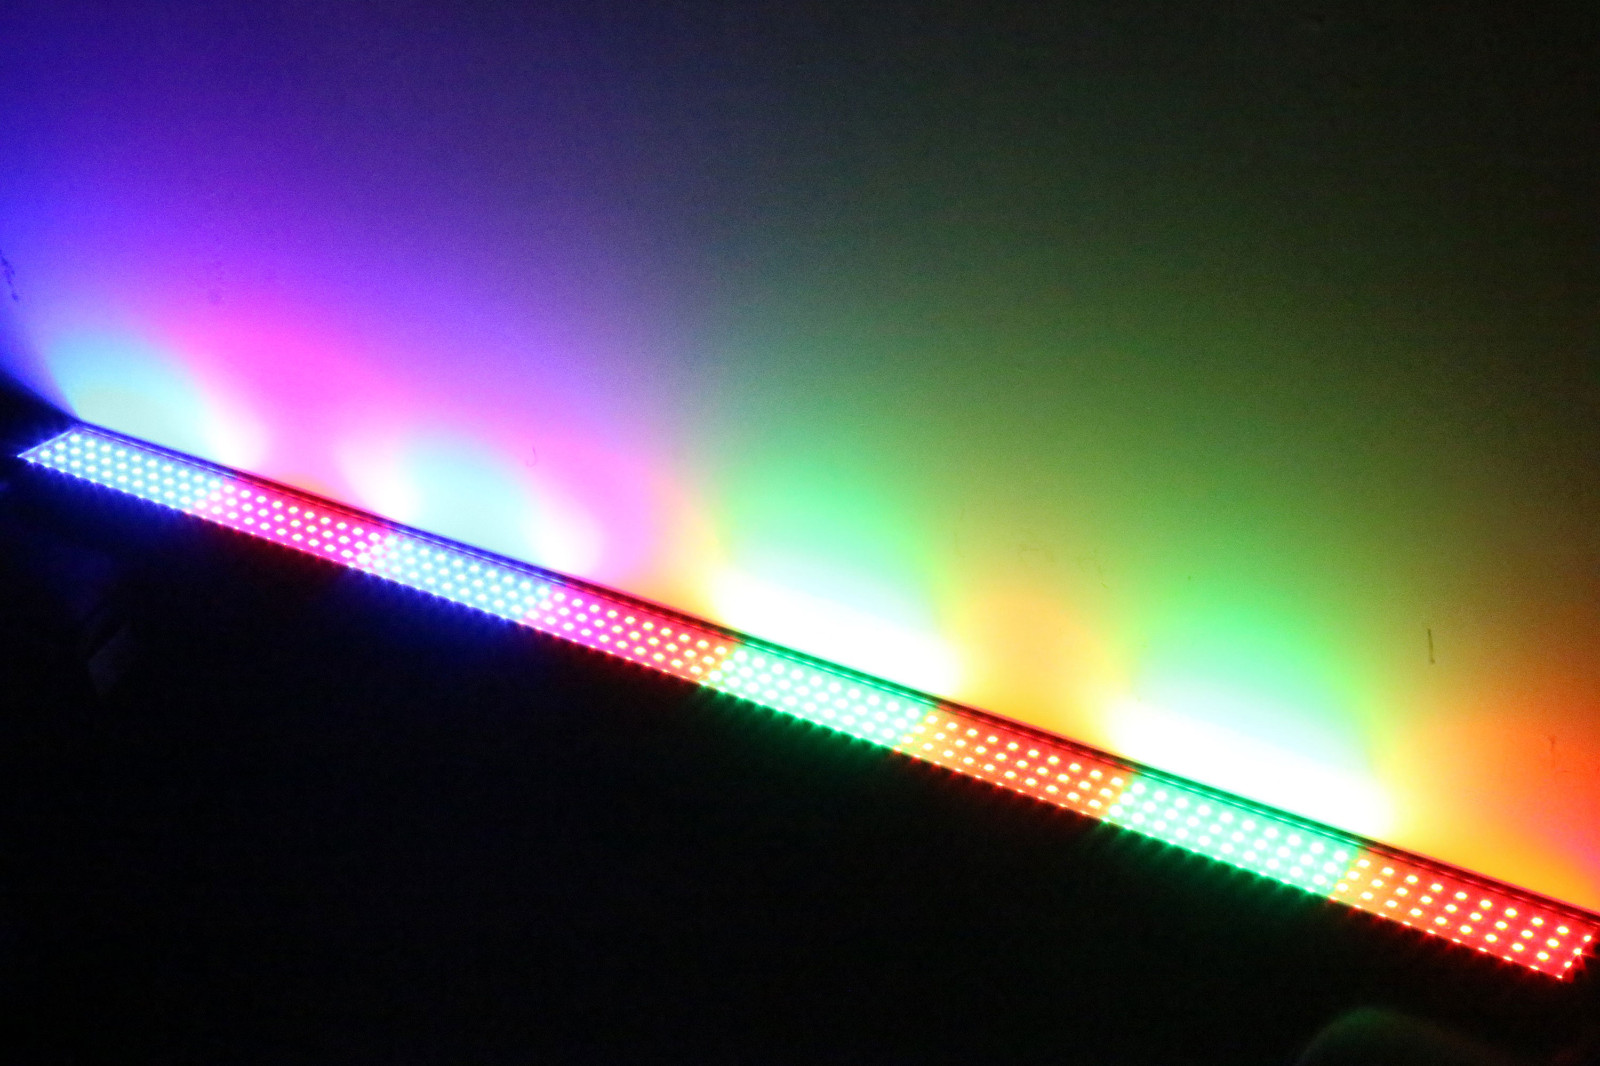 Marslite pixel led wash light bar to decorative for party-4